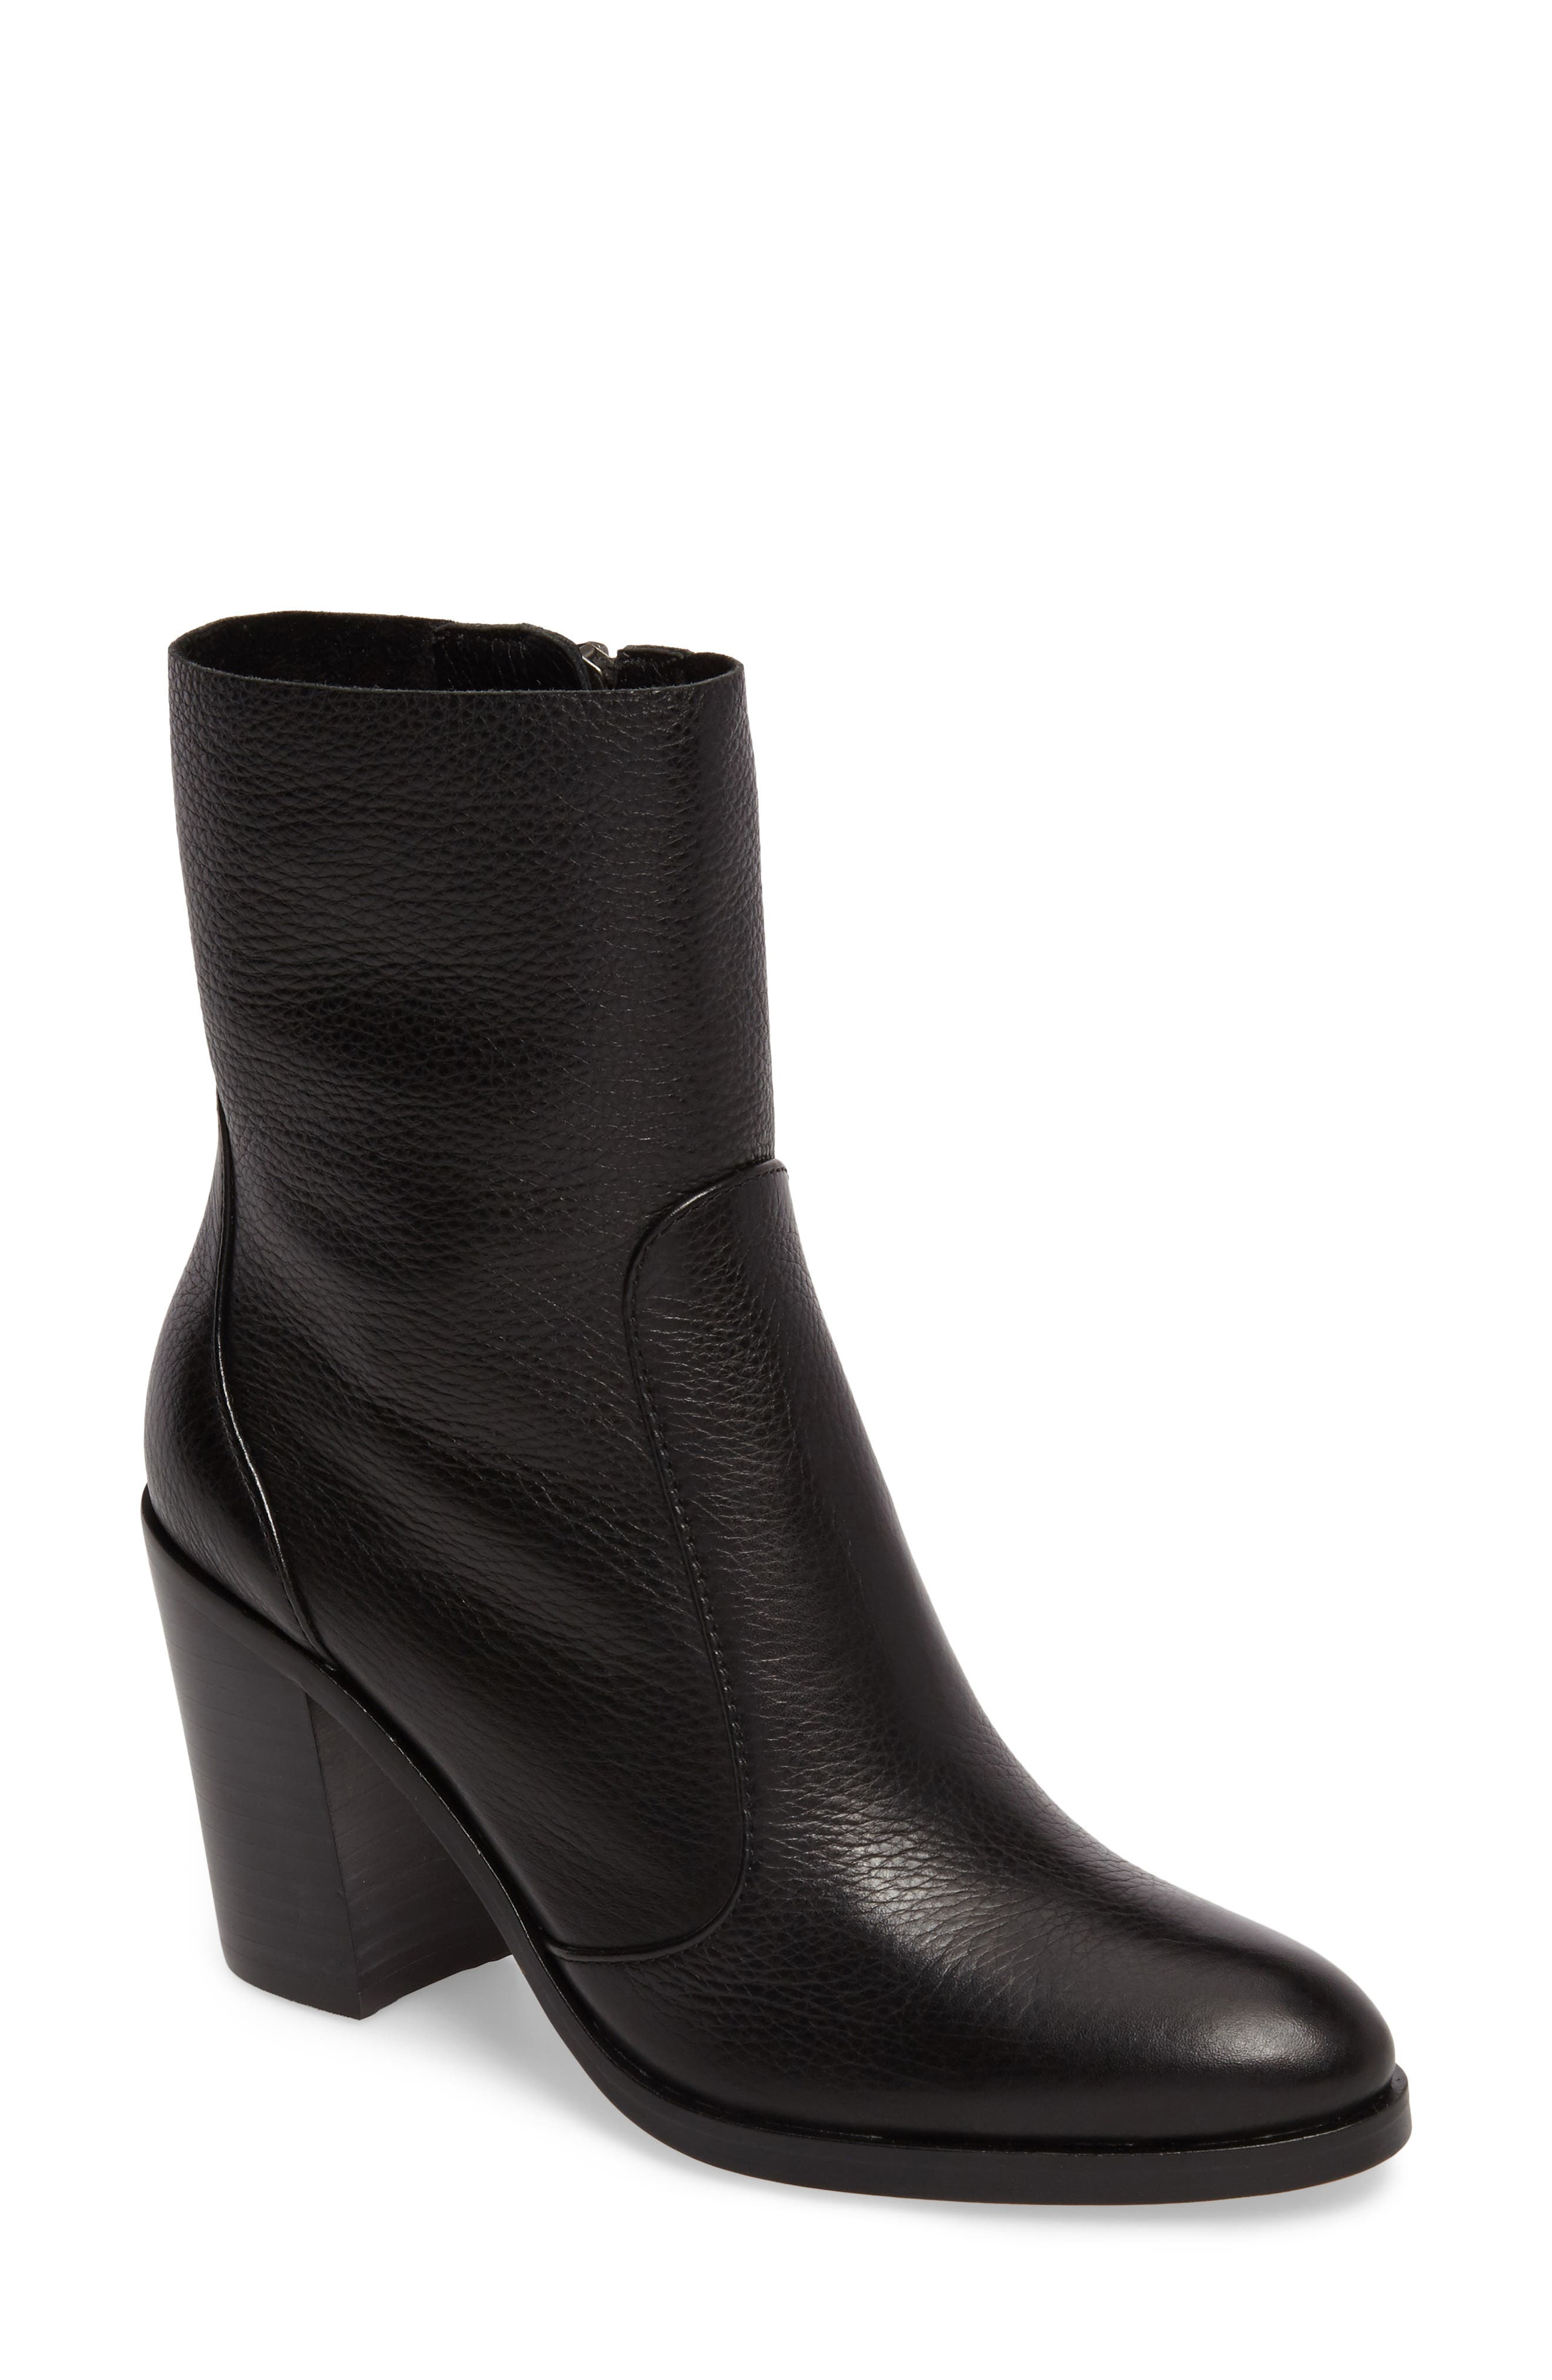 Roselyn Bootie,                             Main thumbnail 1, color,                             BLACK LEATHER